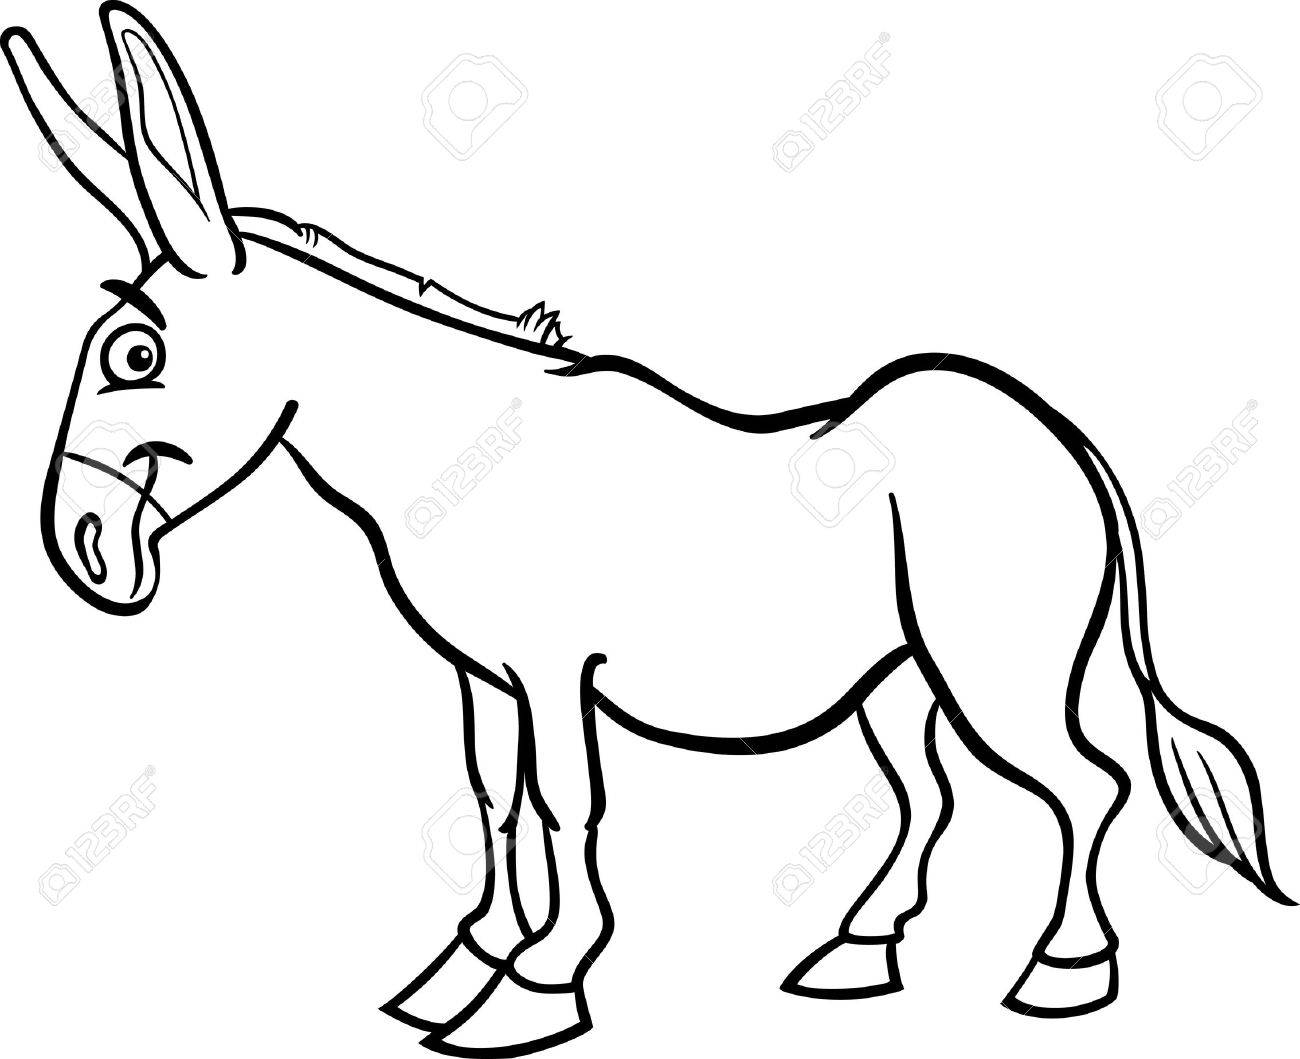 Farm animal horse coloring pages - Black And White Cartoon Illustration Of Funny Donkey Farm Animal For Coloring Book Stock Vector